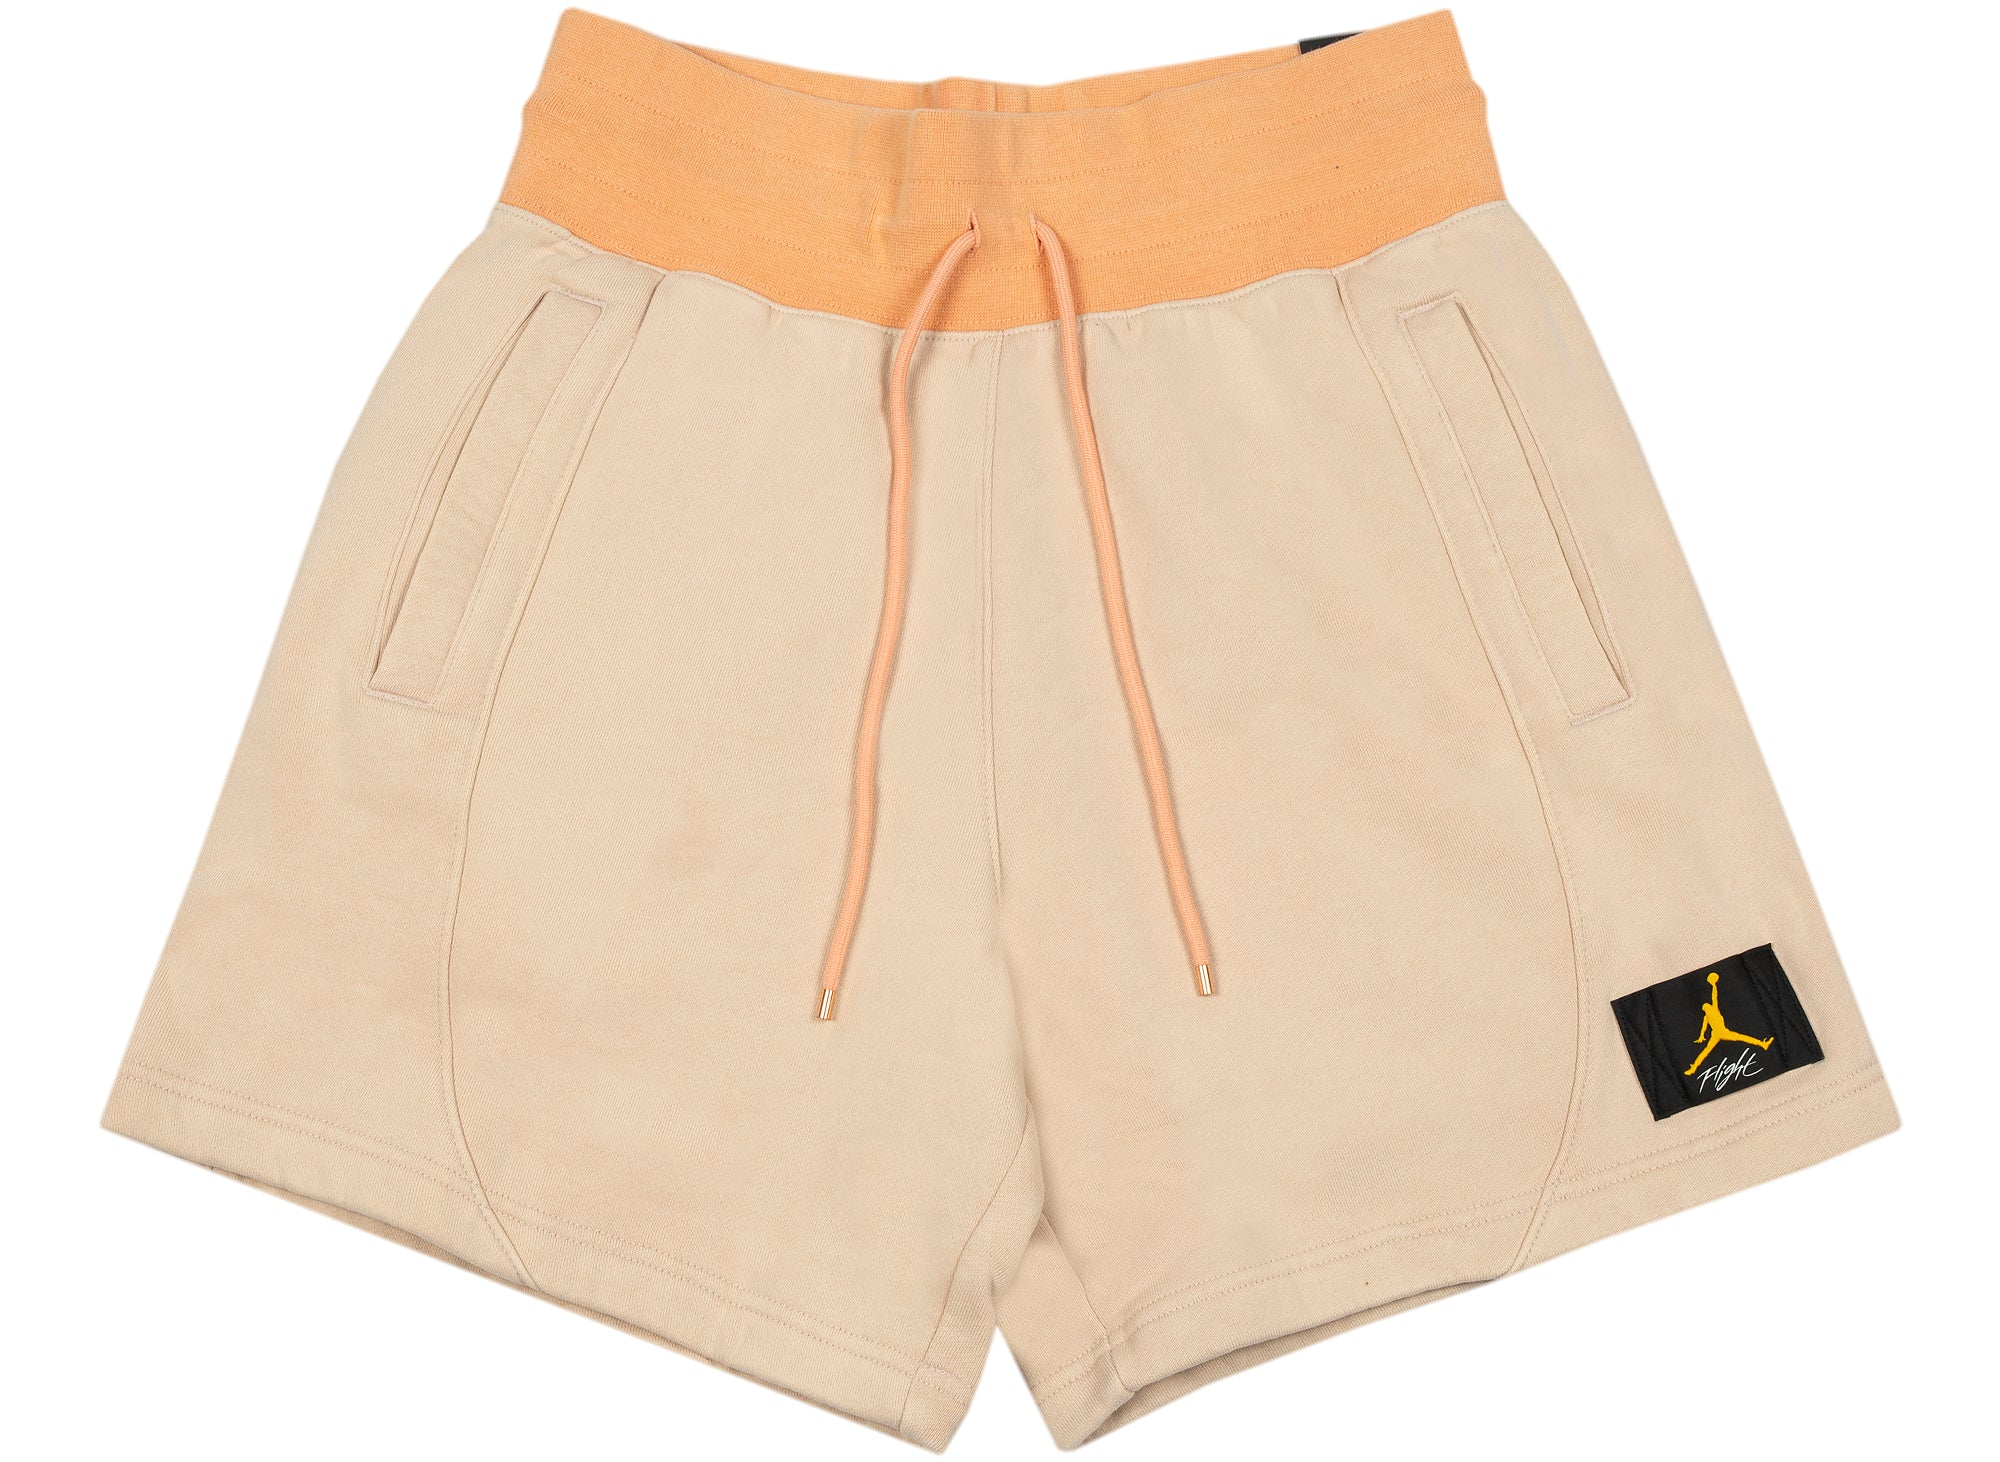 Women's Jordan Flight Fleece Shorts in Apricot / Biege xld